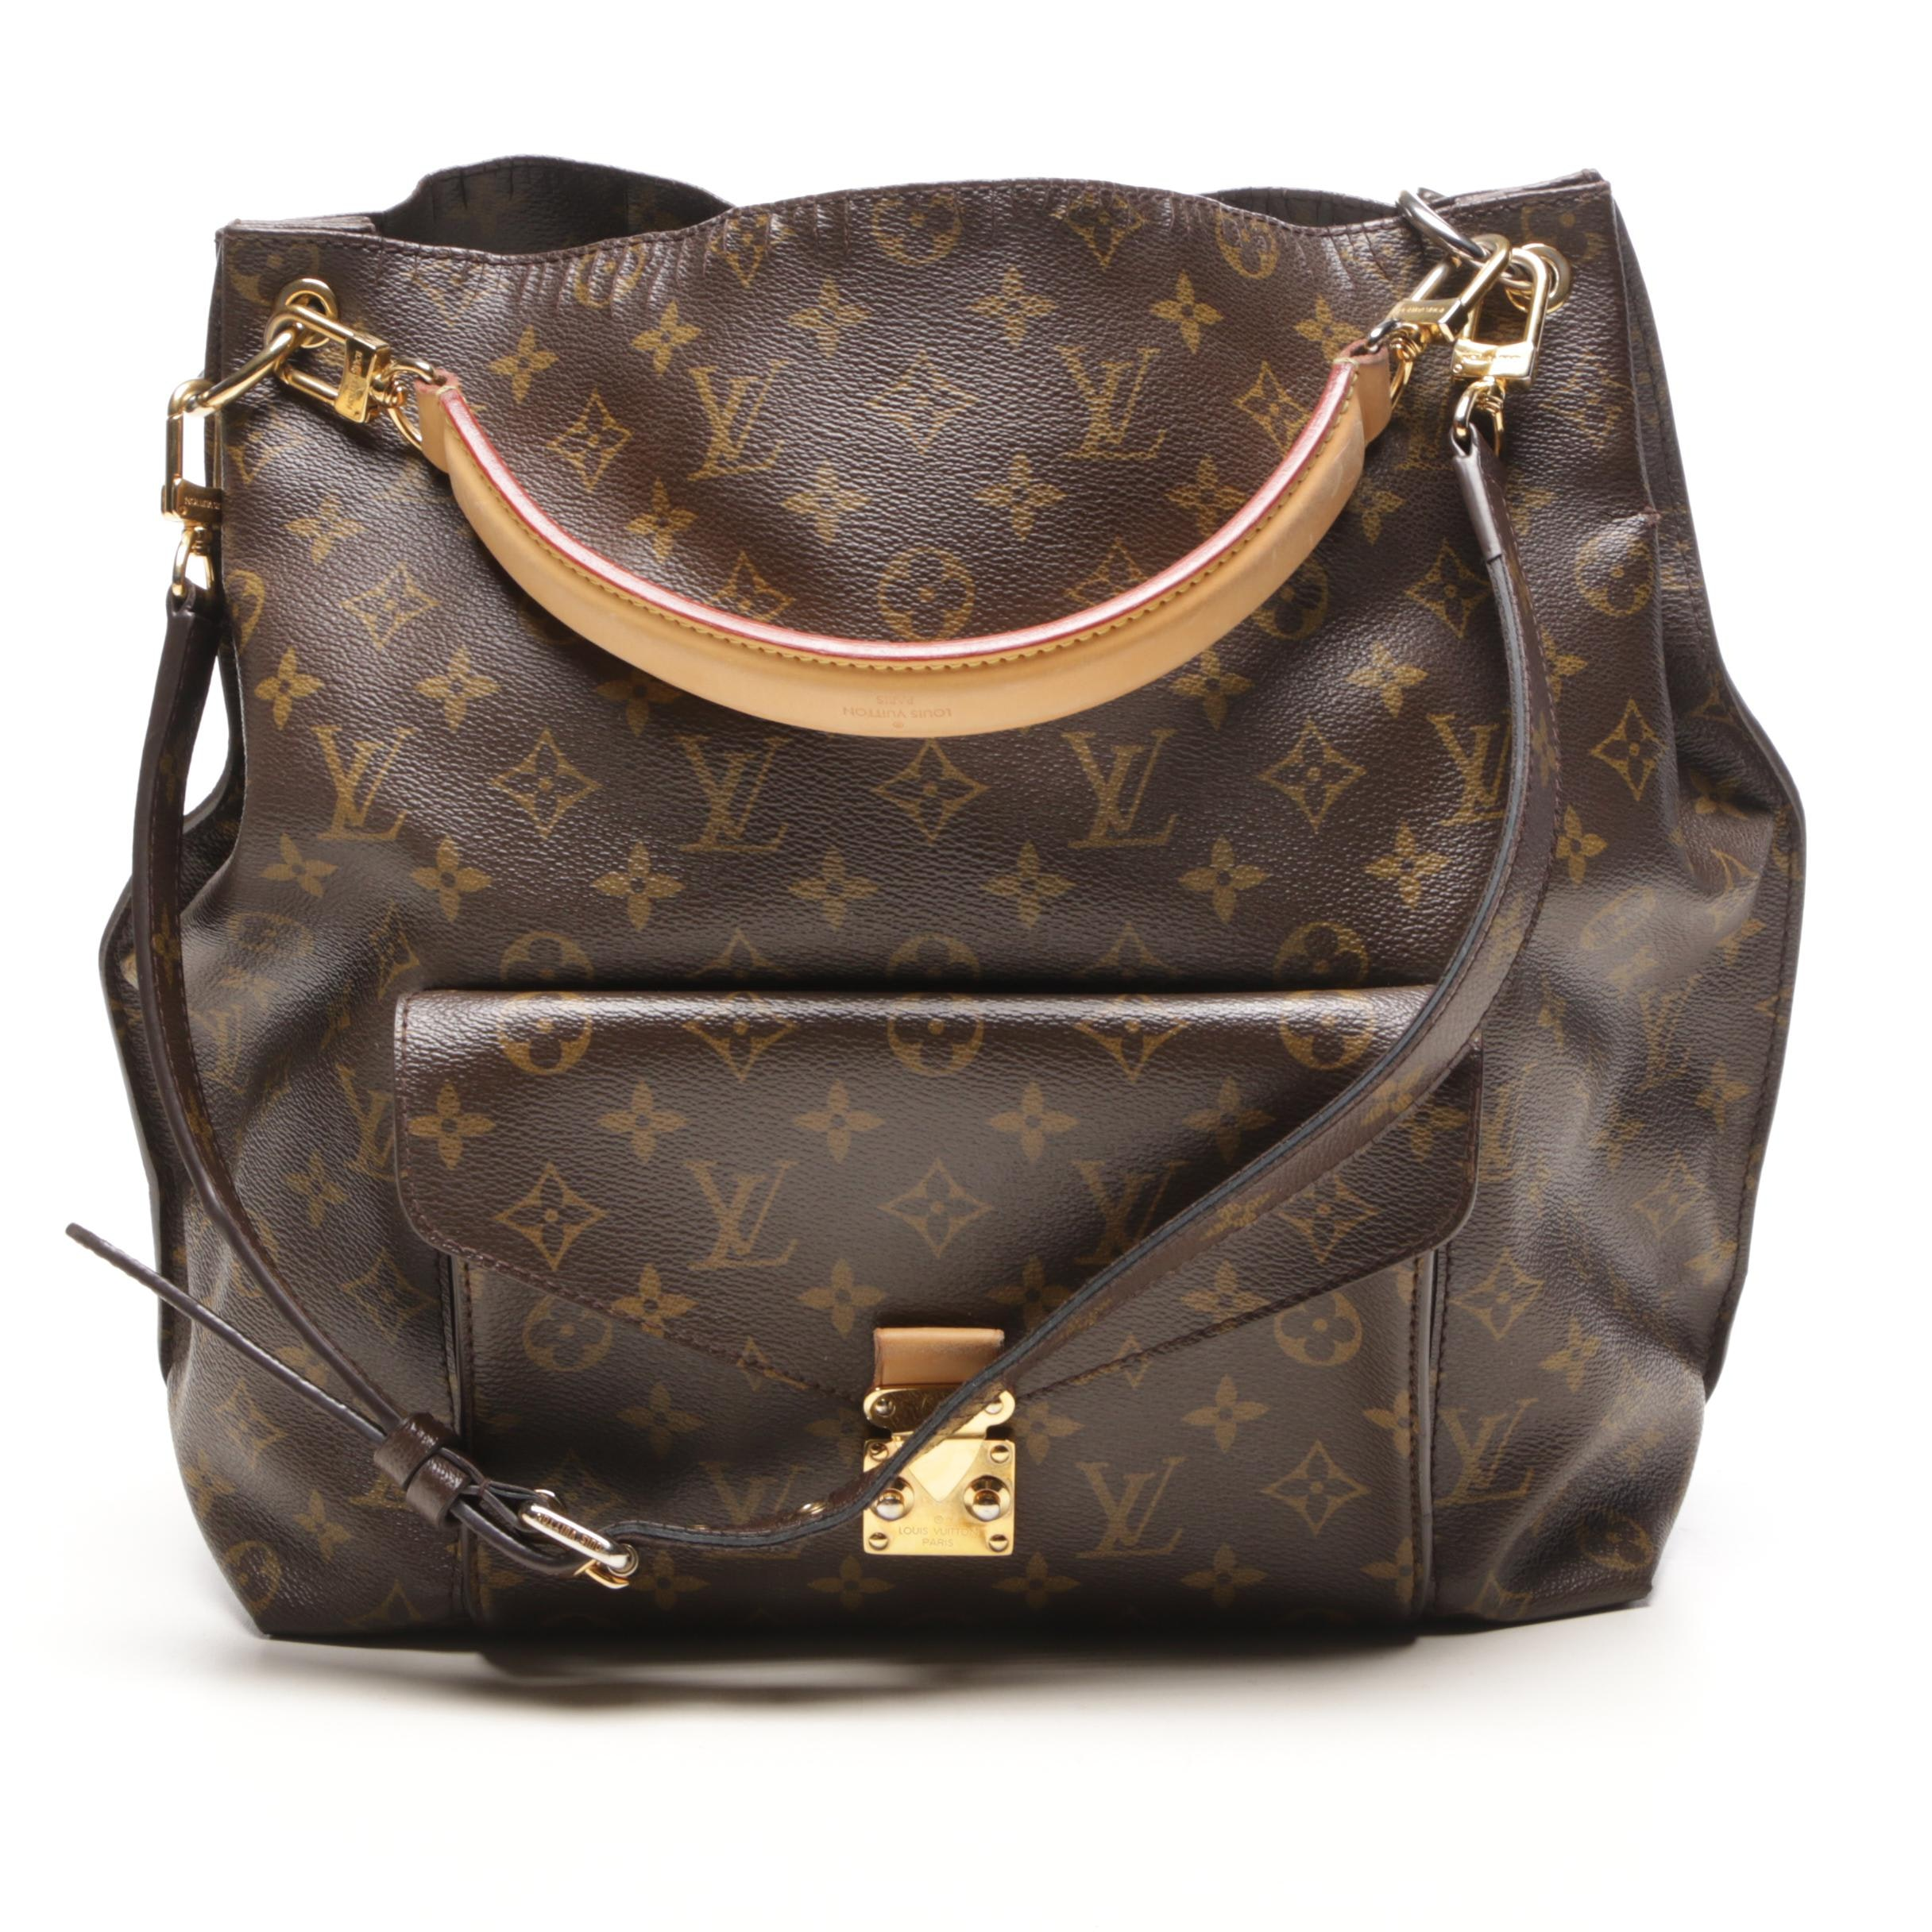 Louis Vuitton Paris Monogram Canvas Metis Shoulder Bag